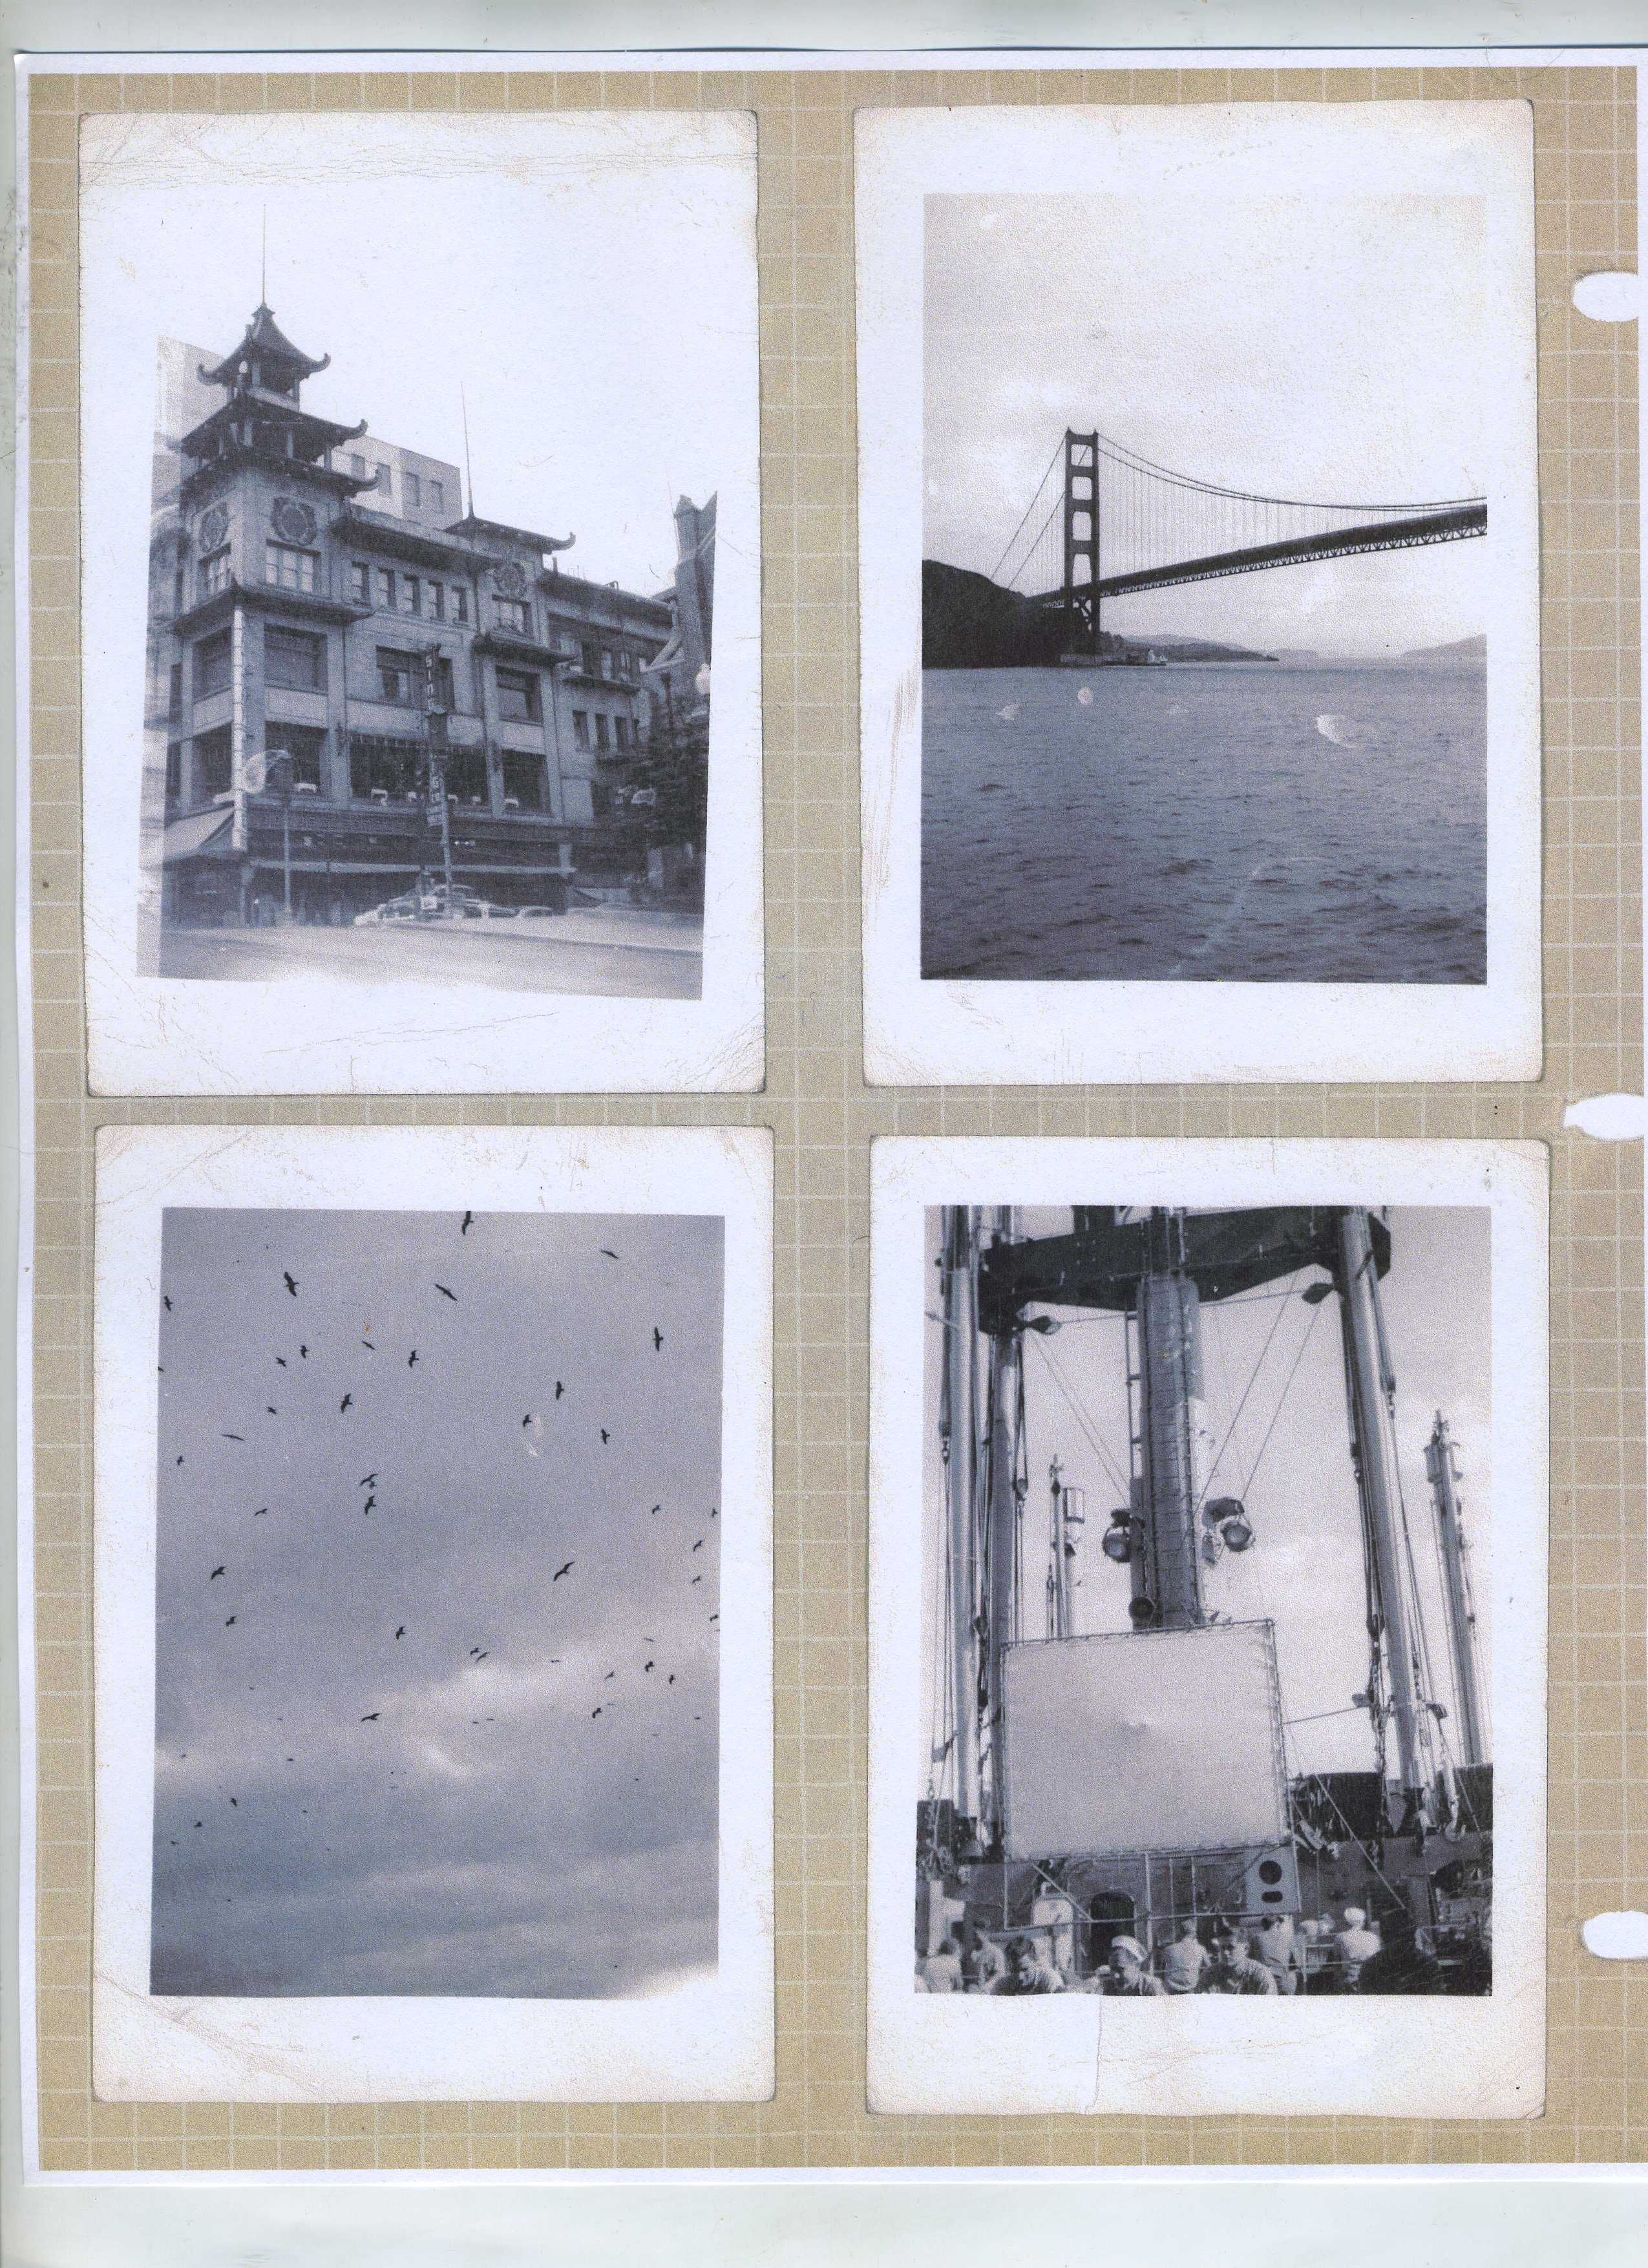 My father had a poet's eye.  I believe he took these photos on leave during the Korean War.